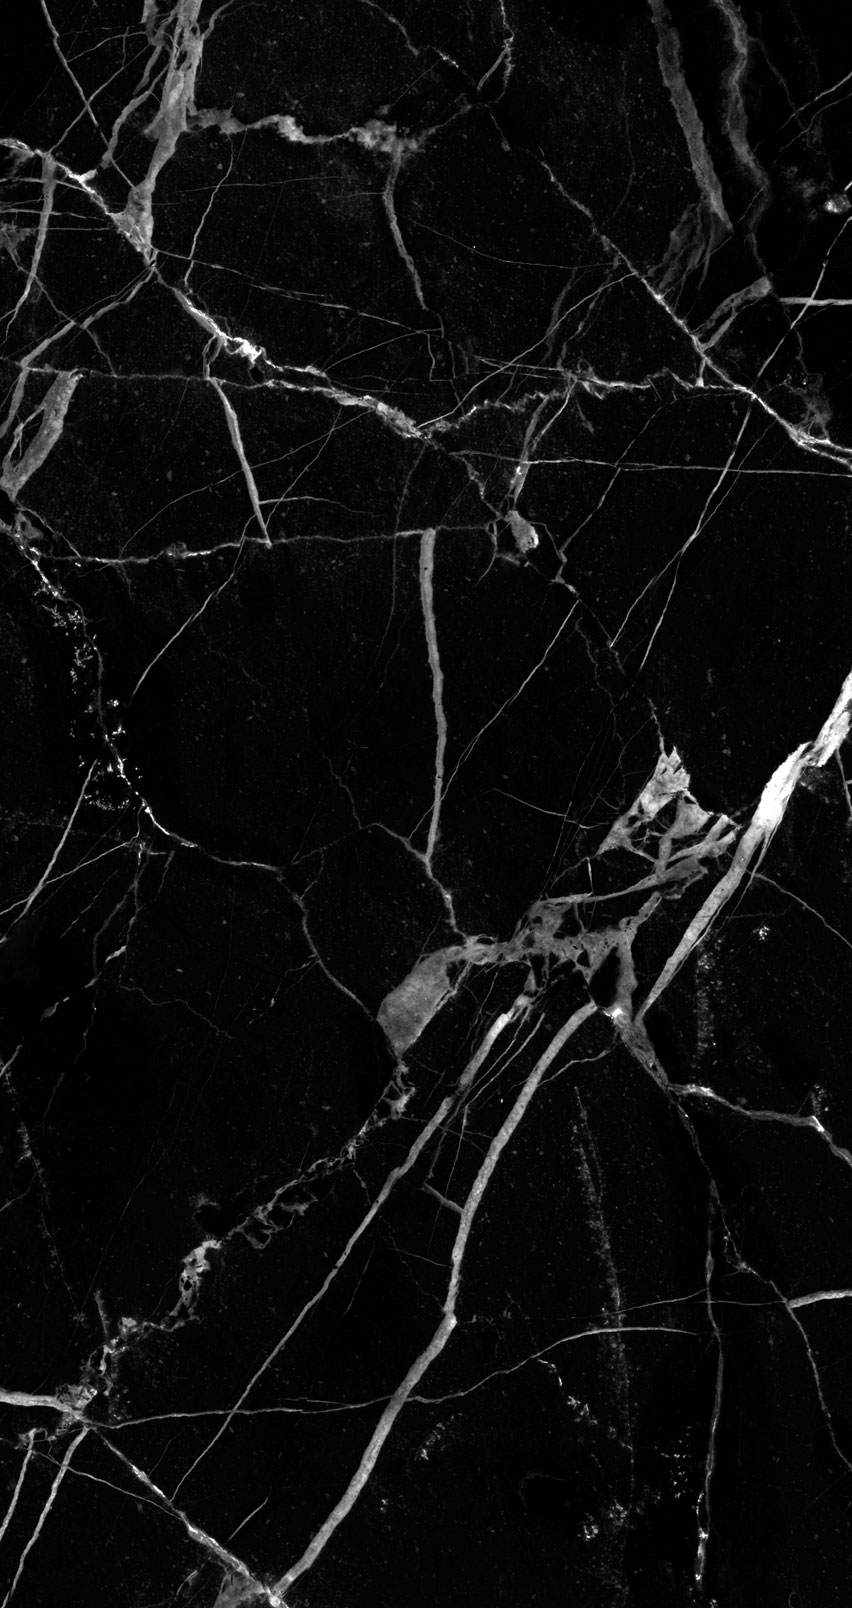 Free Download Searched Term Black And White Marble Wallpaper